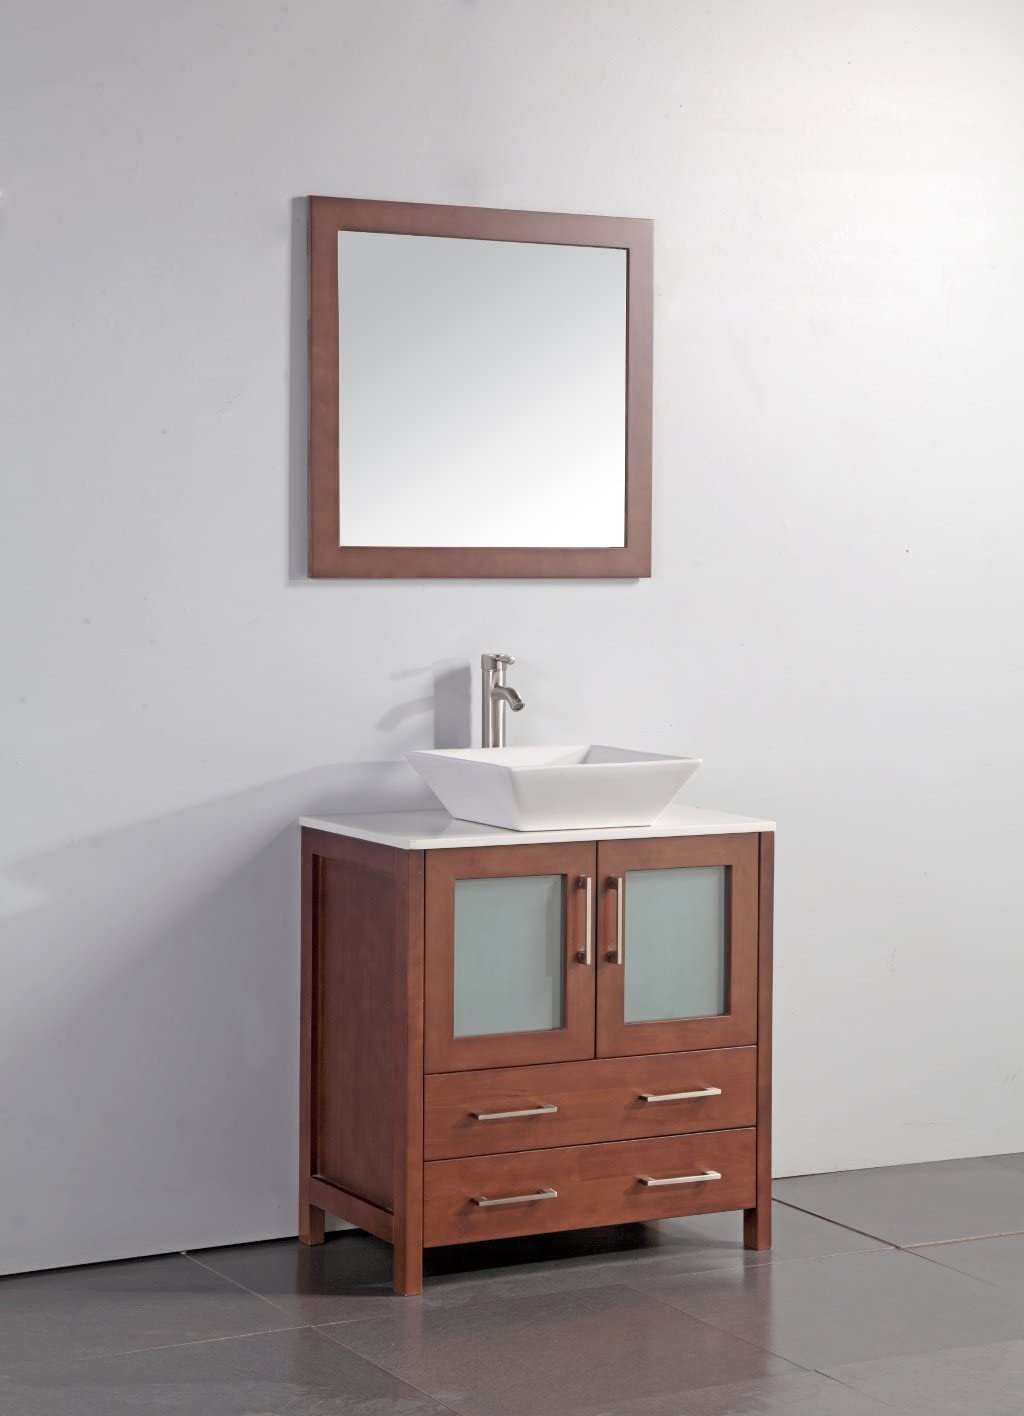 Legion Furniture WA7830C 30 Artificial Stone Top Vessel Sink Bathroom Vanity with Matching Framed Mirror and, Cherry Finish